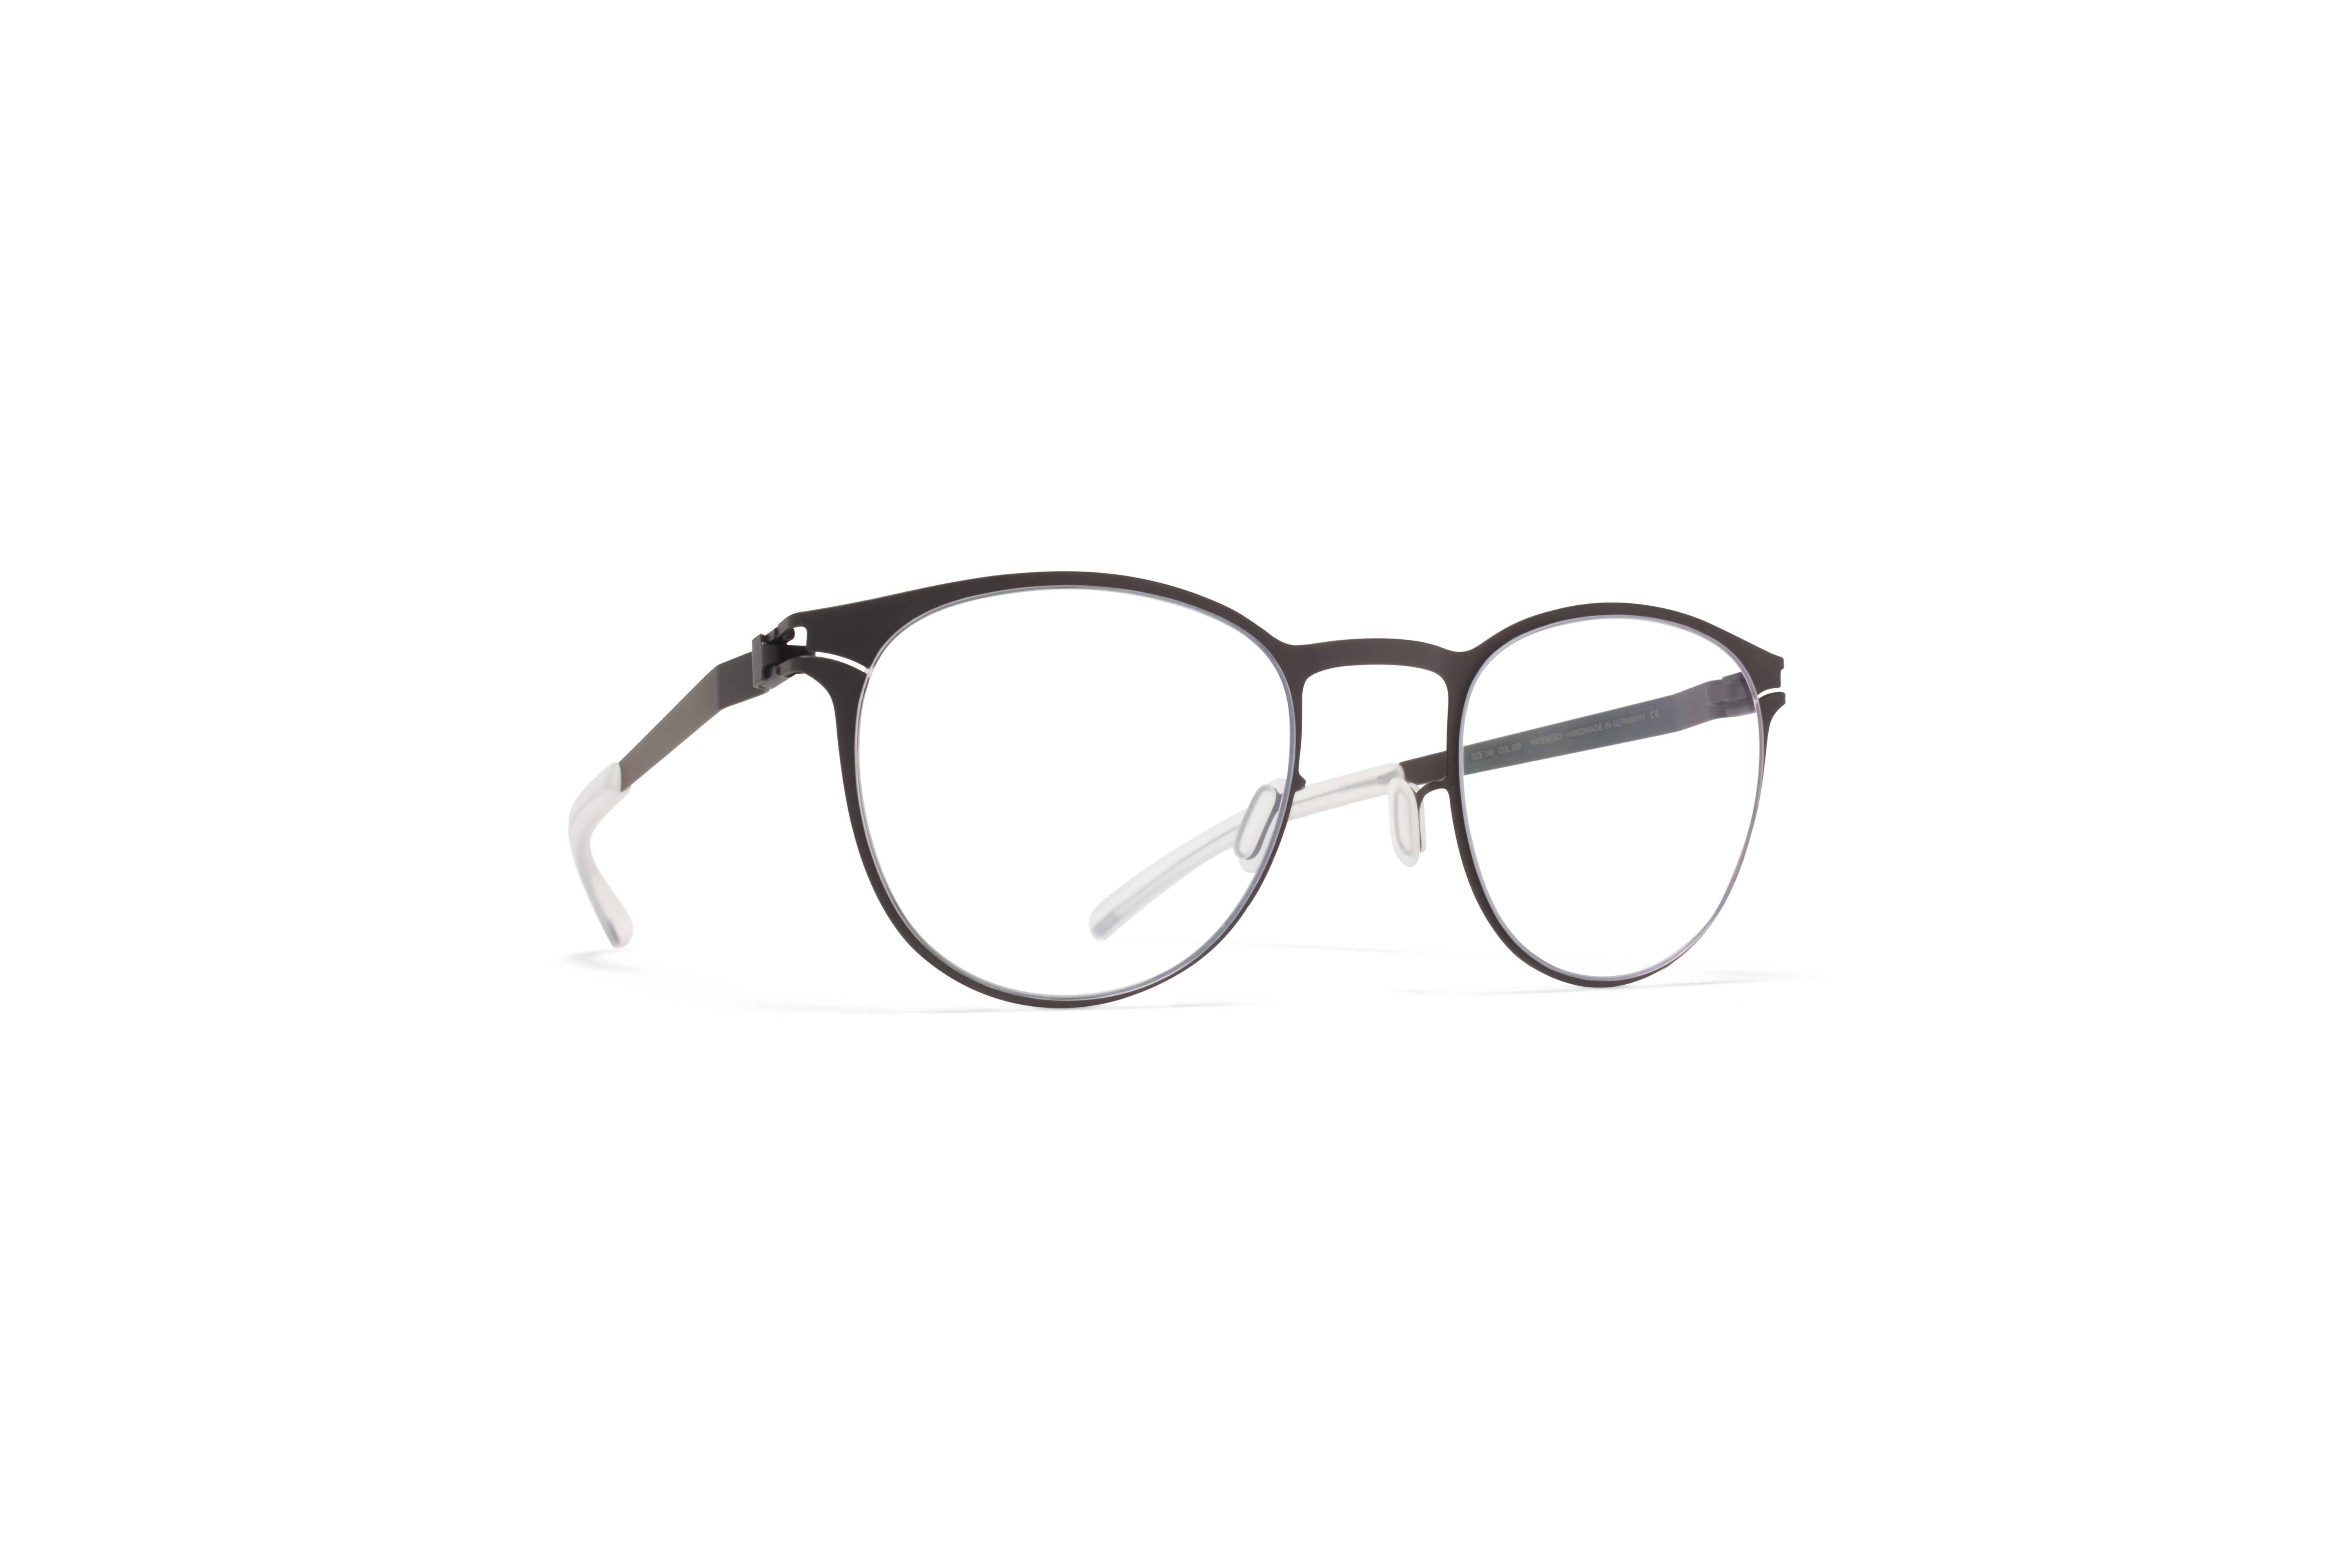 MYKITA No1 Rx Alexander Blackberry Clear P590ae0aca506f